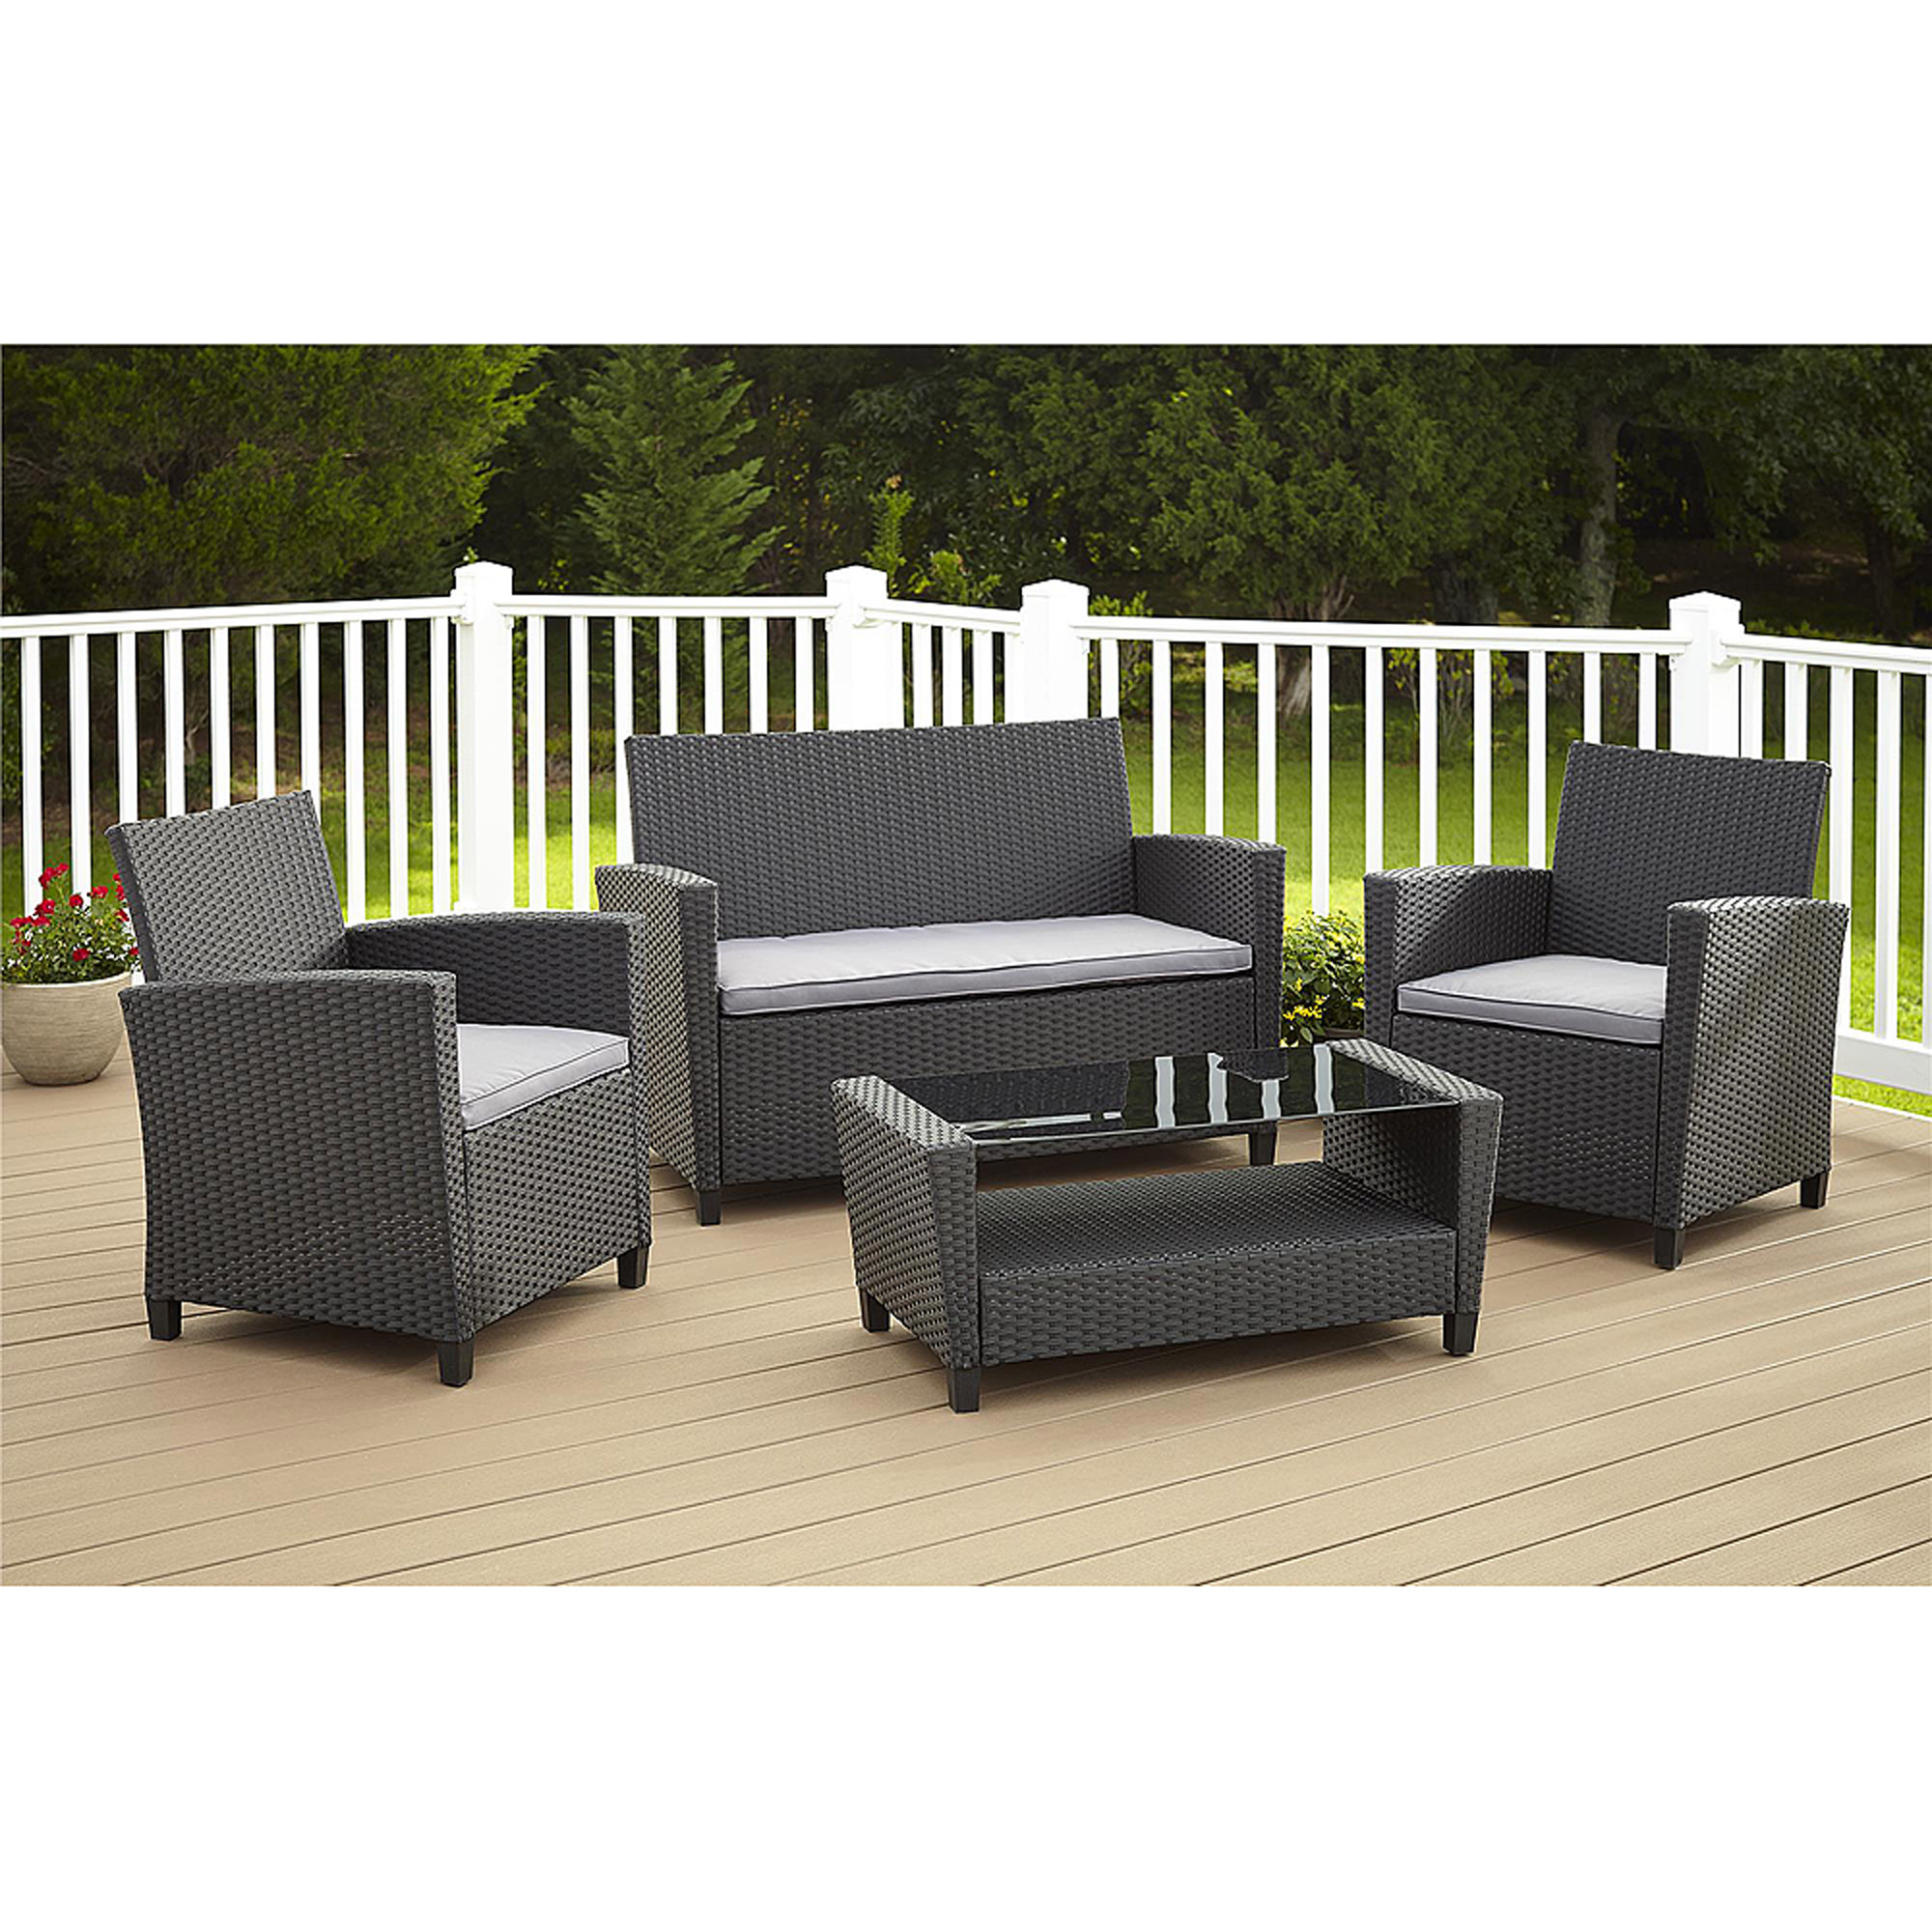 cosco outdoor malmo 4piece resin wicker patio set walmartcom